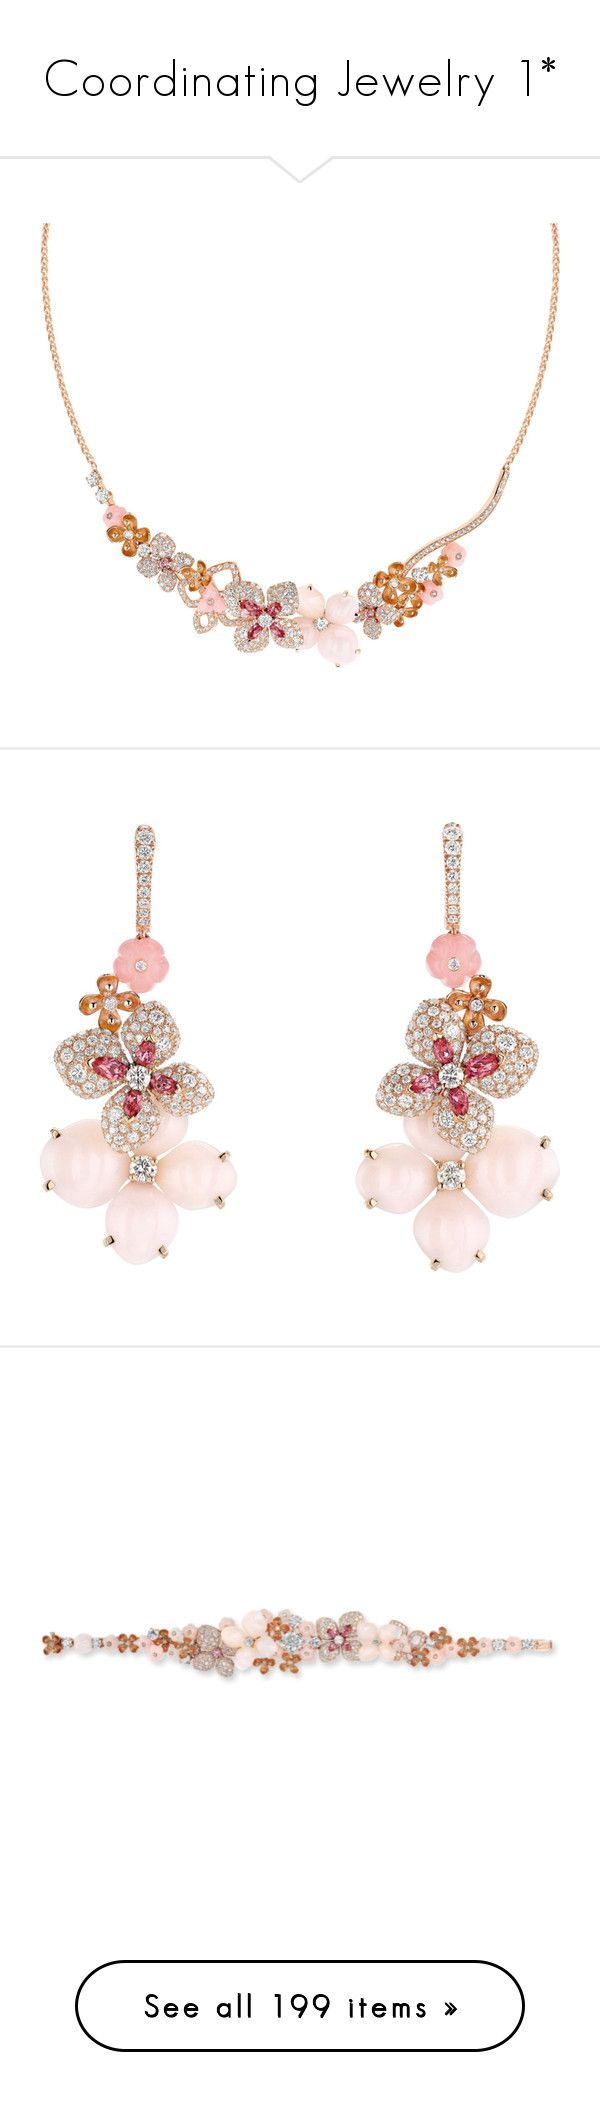 """""""Coordinating Jewelry 1*"""" by thesassystewart on Polyvore featuring jewelry, necklaces, red gold necklace, pink diamond necklace, diamond jewelry, pink jewelry, floral necklace, earrings, pink earrings and chaumet jewelry"""